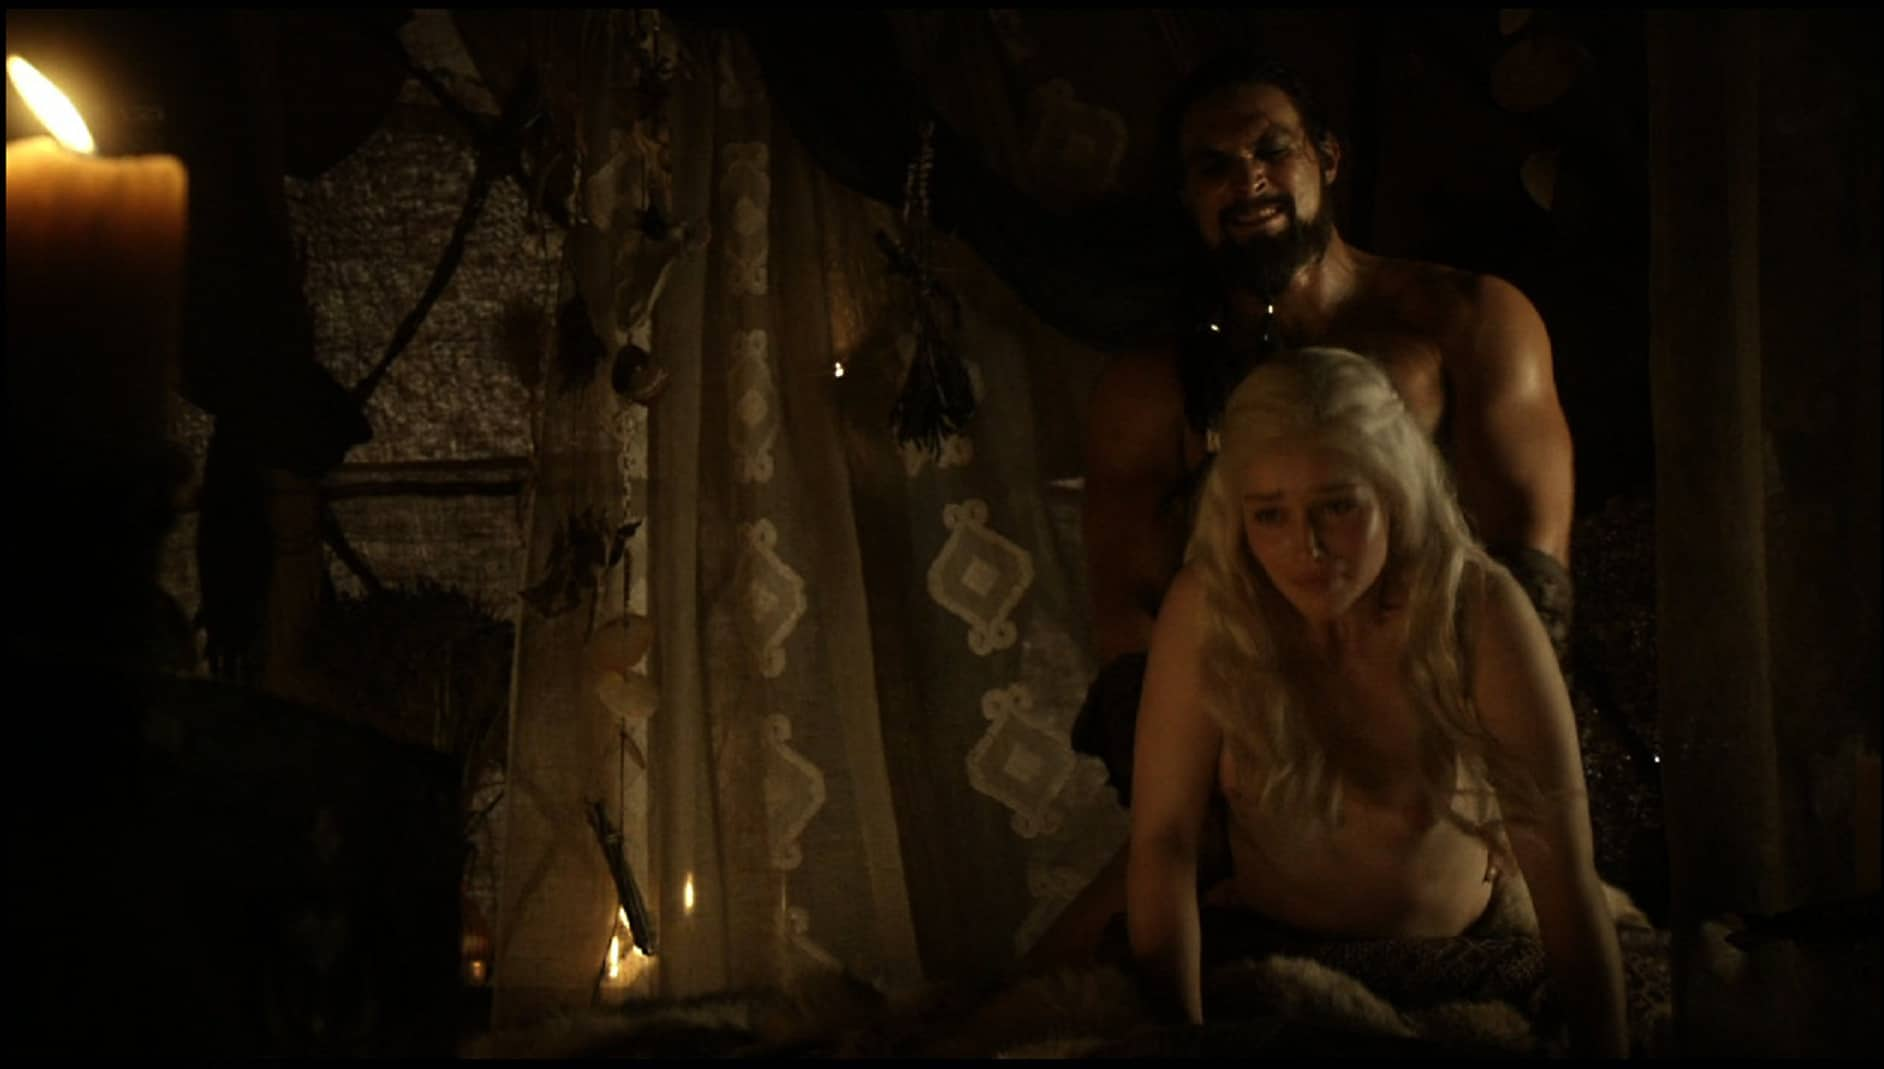 completely naked emilia clarke in the hbo tv show